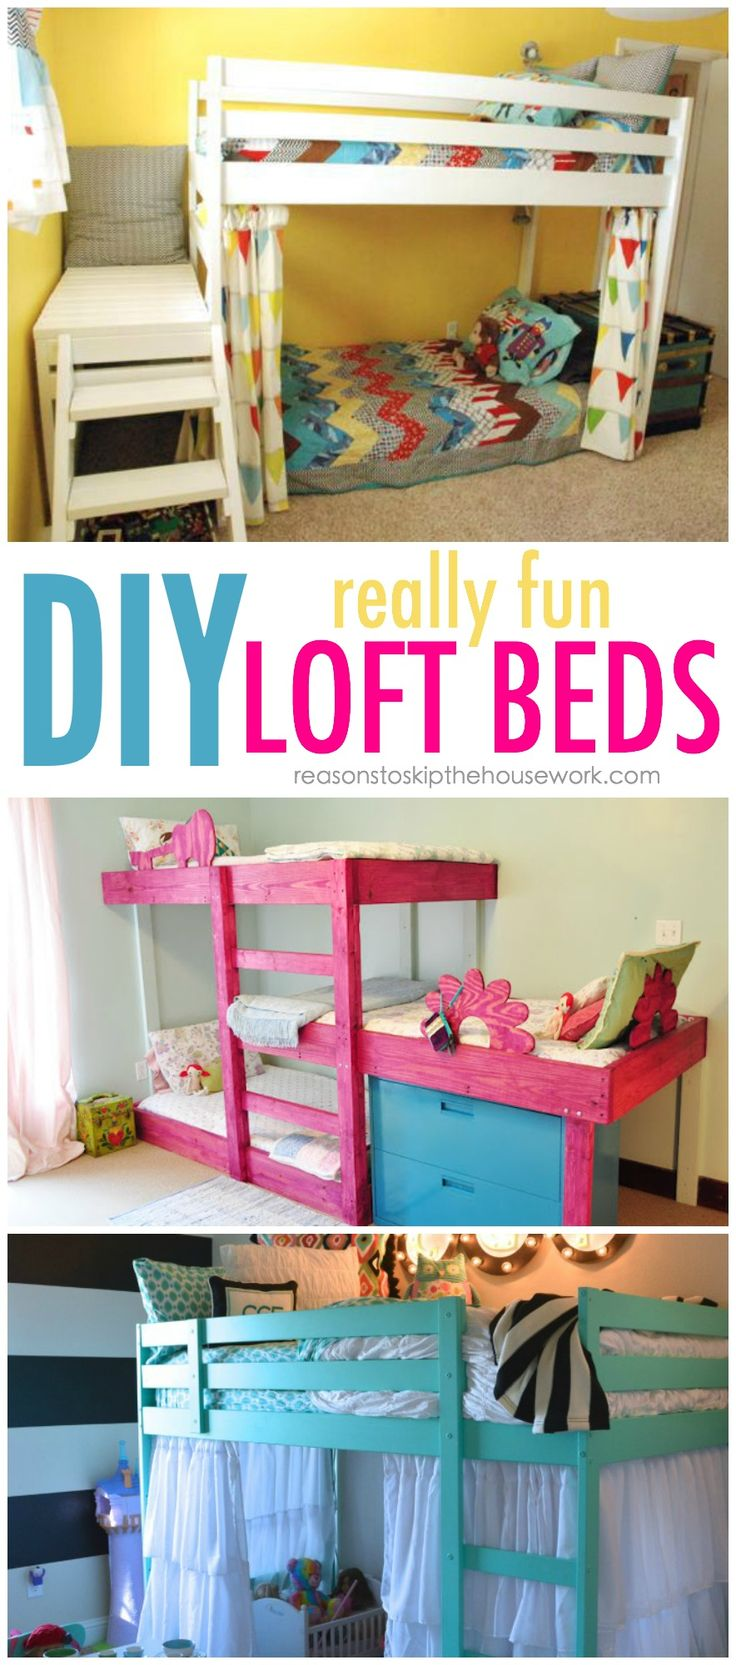 Bedroom ideas for girls with bunk beds - 17 Best Ideas About Girl Loft Beds On Pinterest Teen Loft Bedrooms Girls Loft Bedrooms And Girls Bedroom With Loft Bed